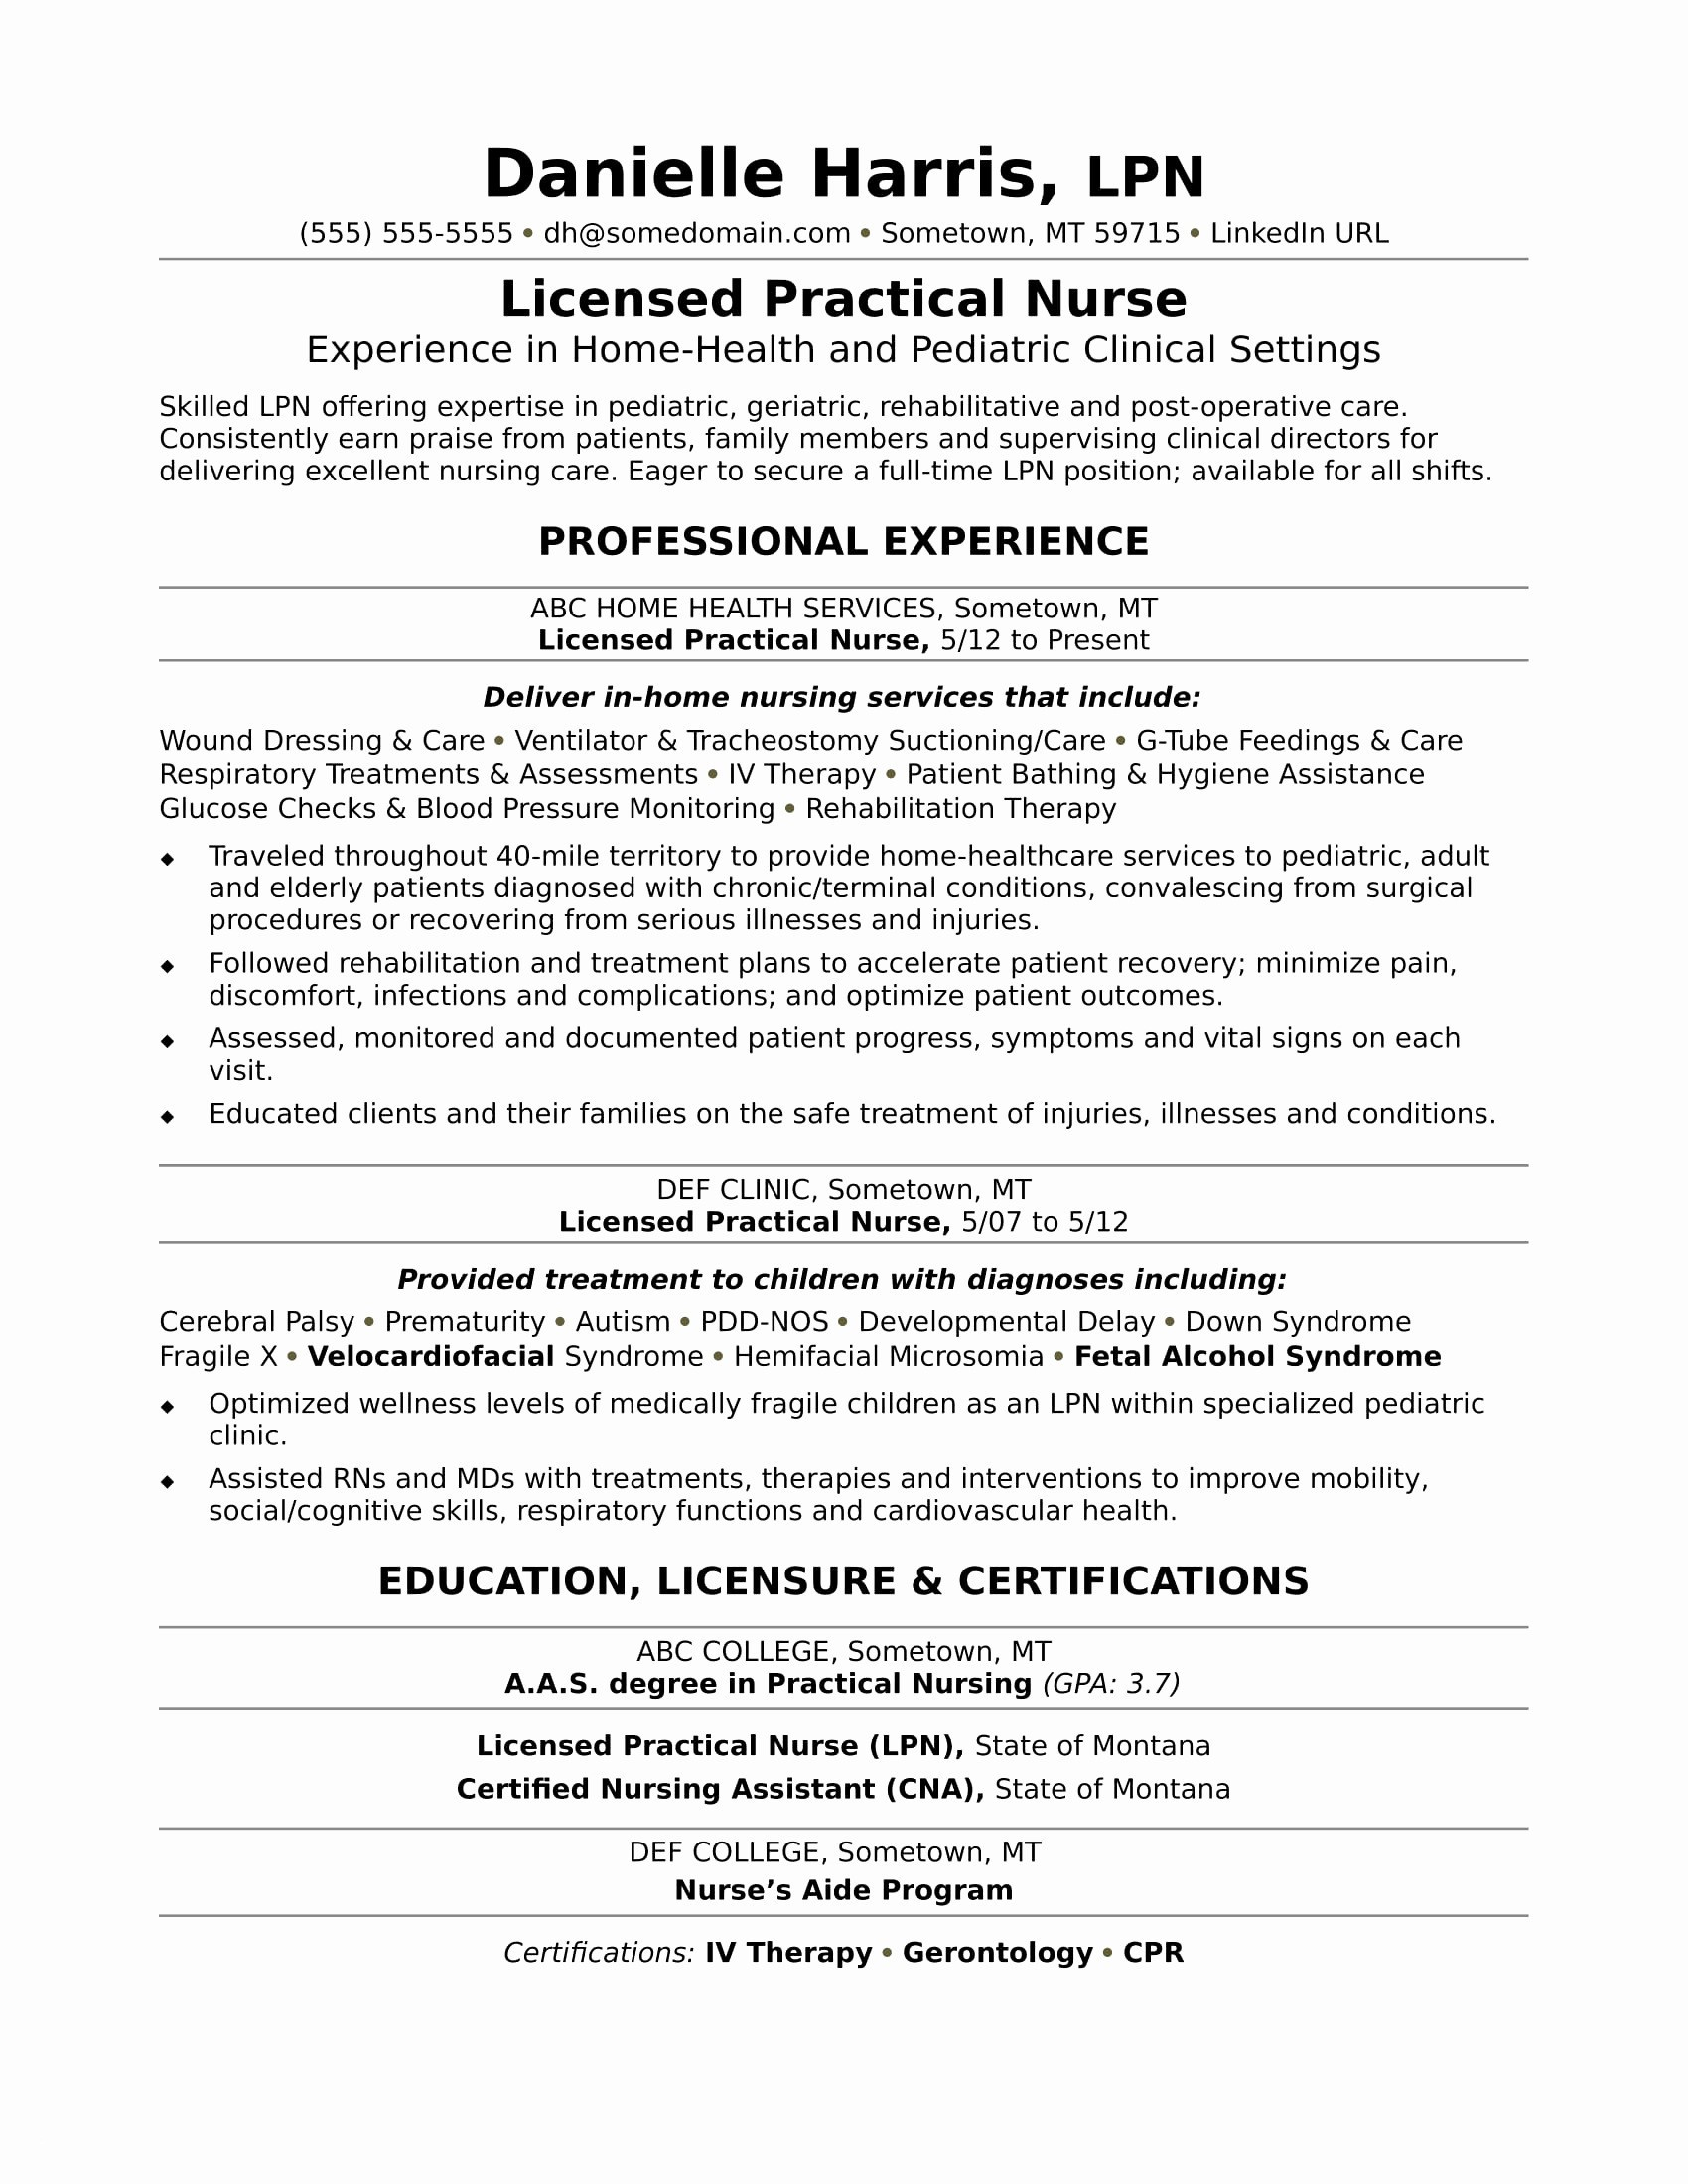 Nursing Resume Cover Letter Template Free - Lpn Resume Template Lovely Lpn Resume Template Free Reference Free